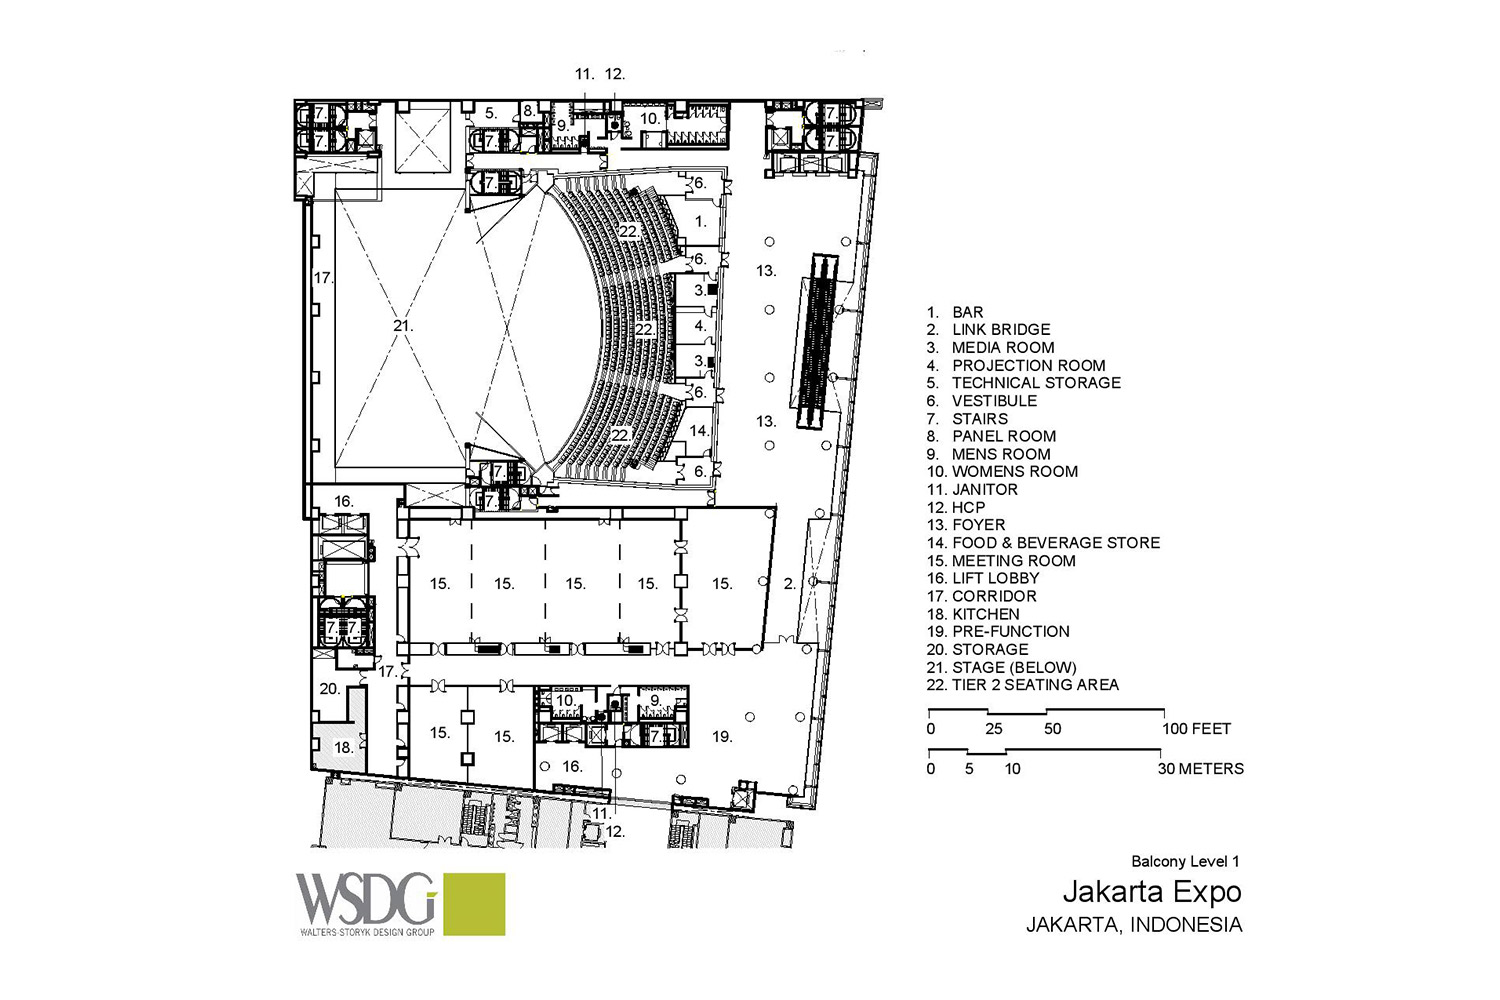 The new Convention Centre and Theatre at Jakarta International Expo (JIExpo) complex will be one of the largest and most forward thinking convention and entertainment centers in Indonesia. WSDG was called to to create an acoustic environment conducive to world-class acoustical standards throughout the complex. Presentation Drawing 3